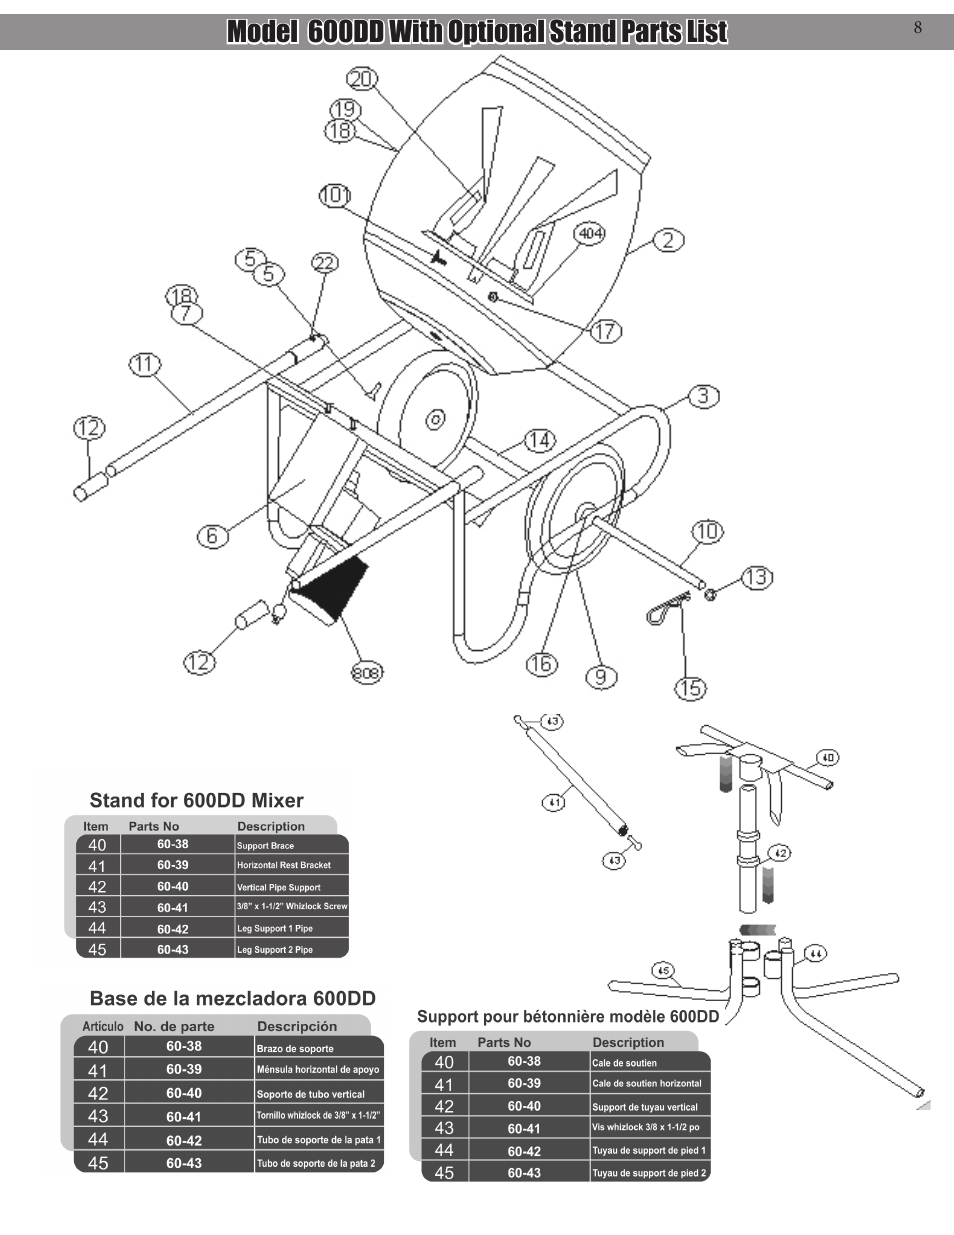 hight resolution of model 600dd with optional stand parts list kushlan products 600dd user manual page 8 14